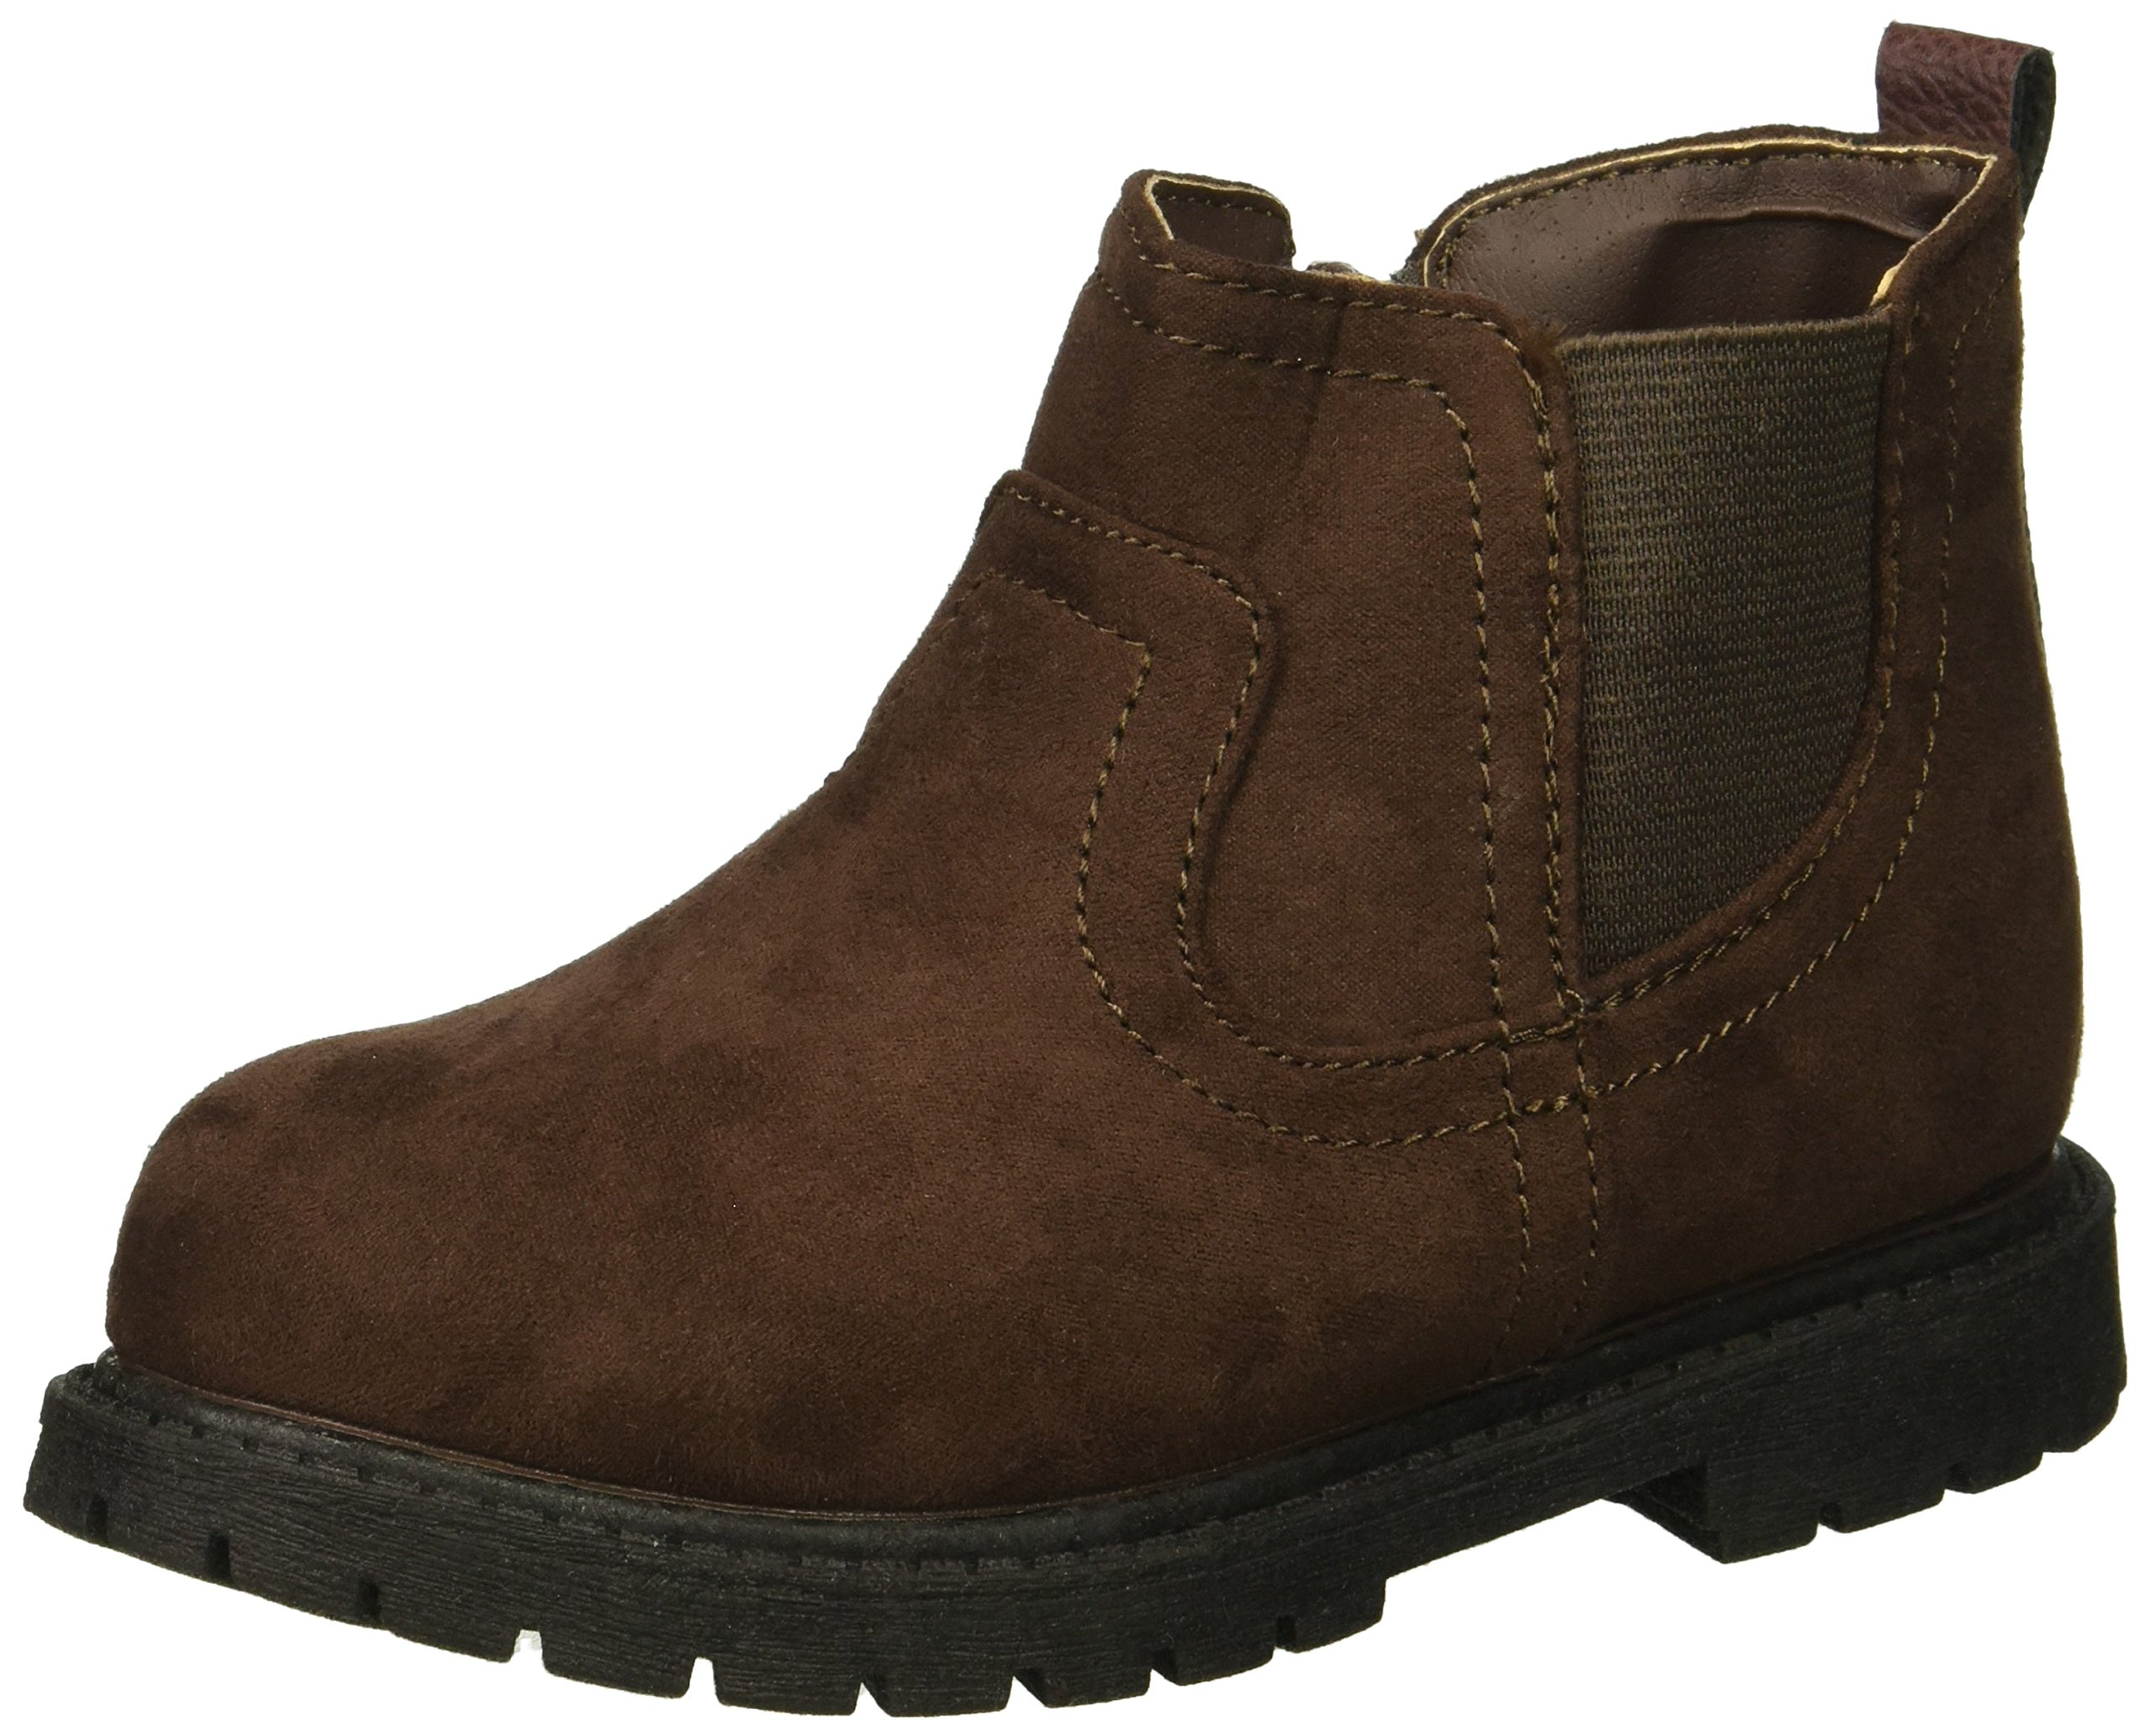 Carter's Boys' Cooper3 Chelsea Fashion Boot, Brown, 9 M US Toddler